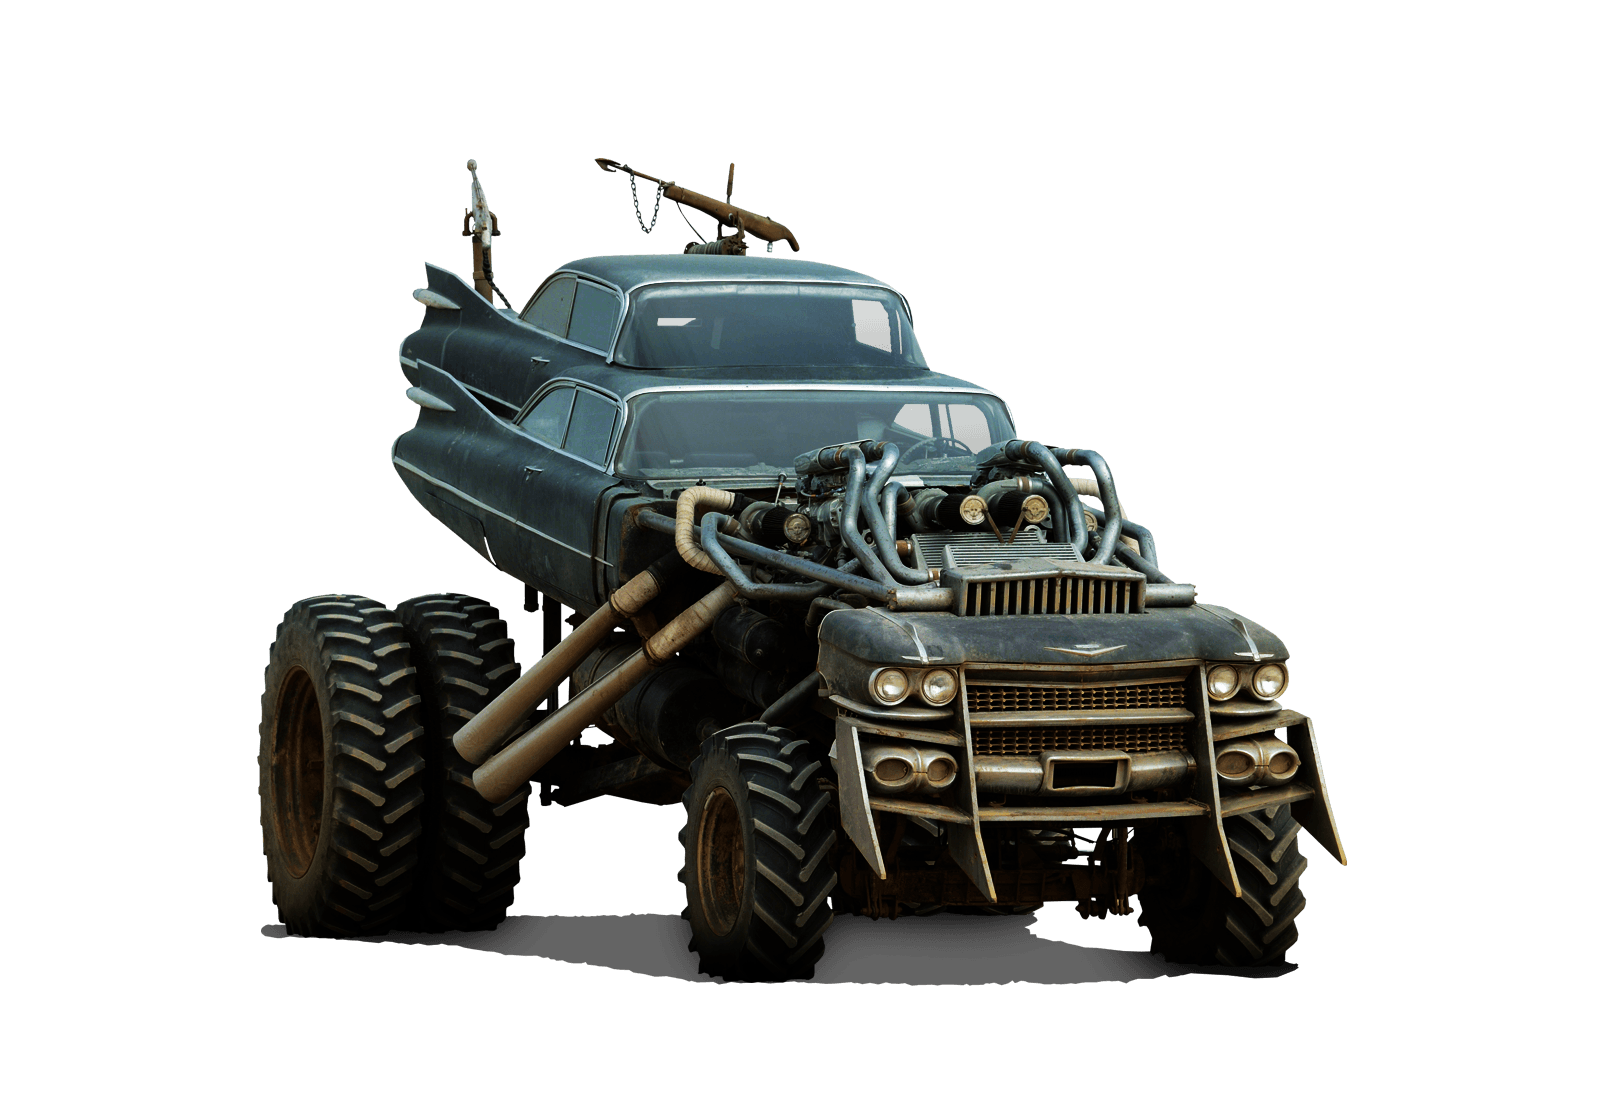 Presenting the absolutely insane vehicle lineup for the mad max fury road movie